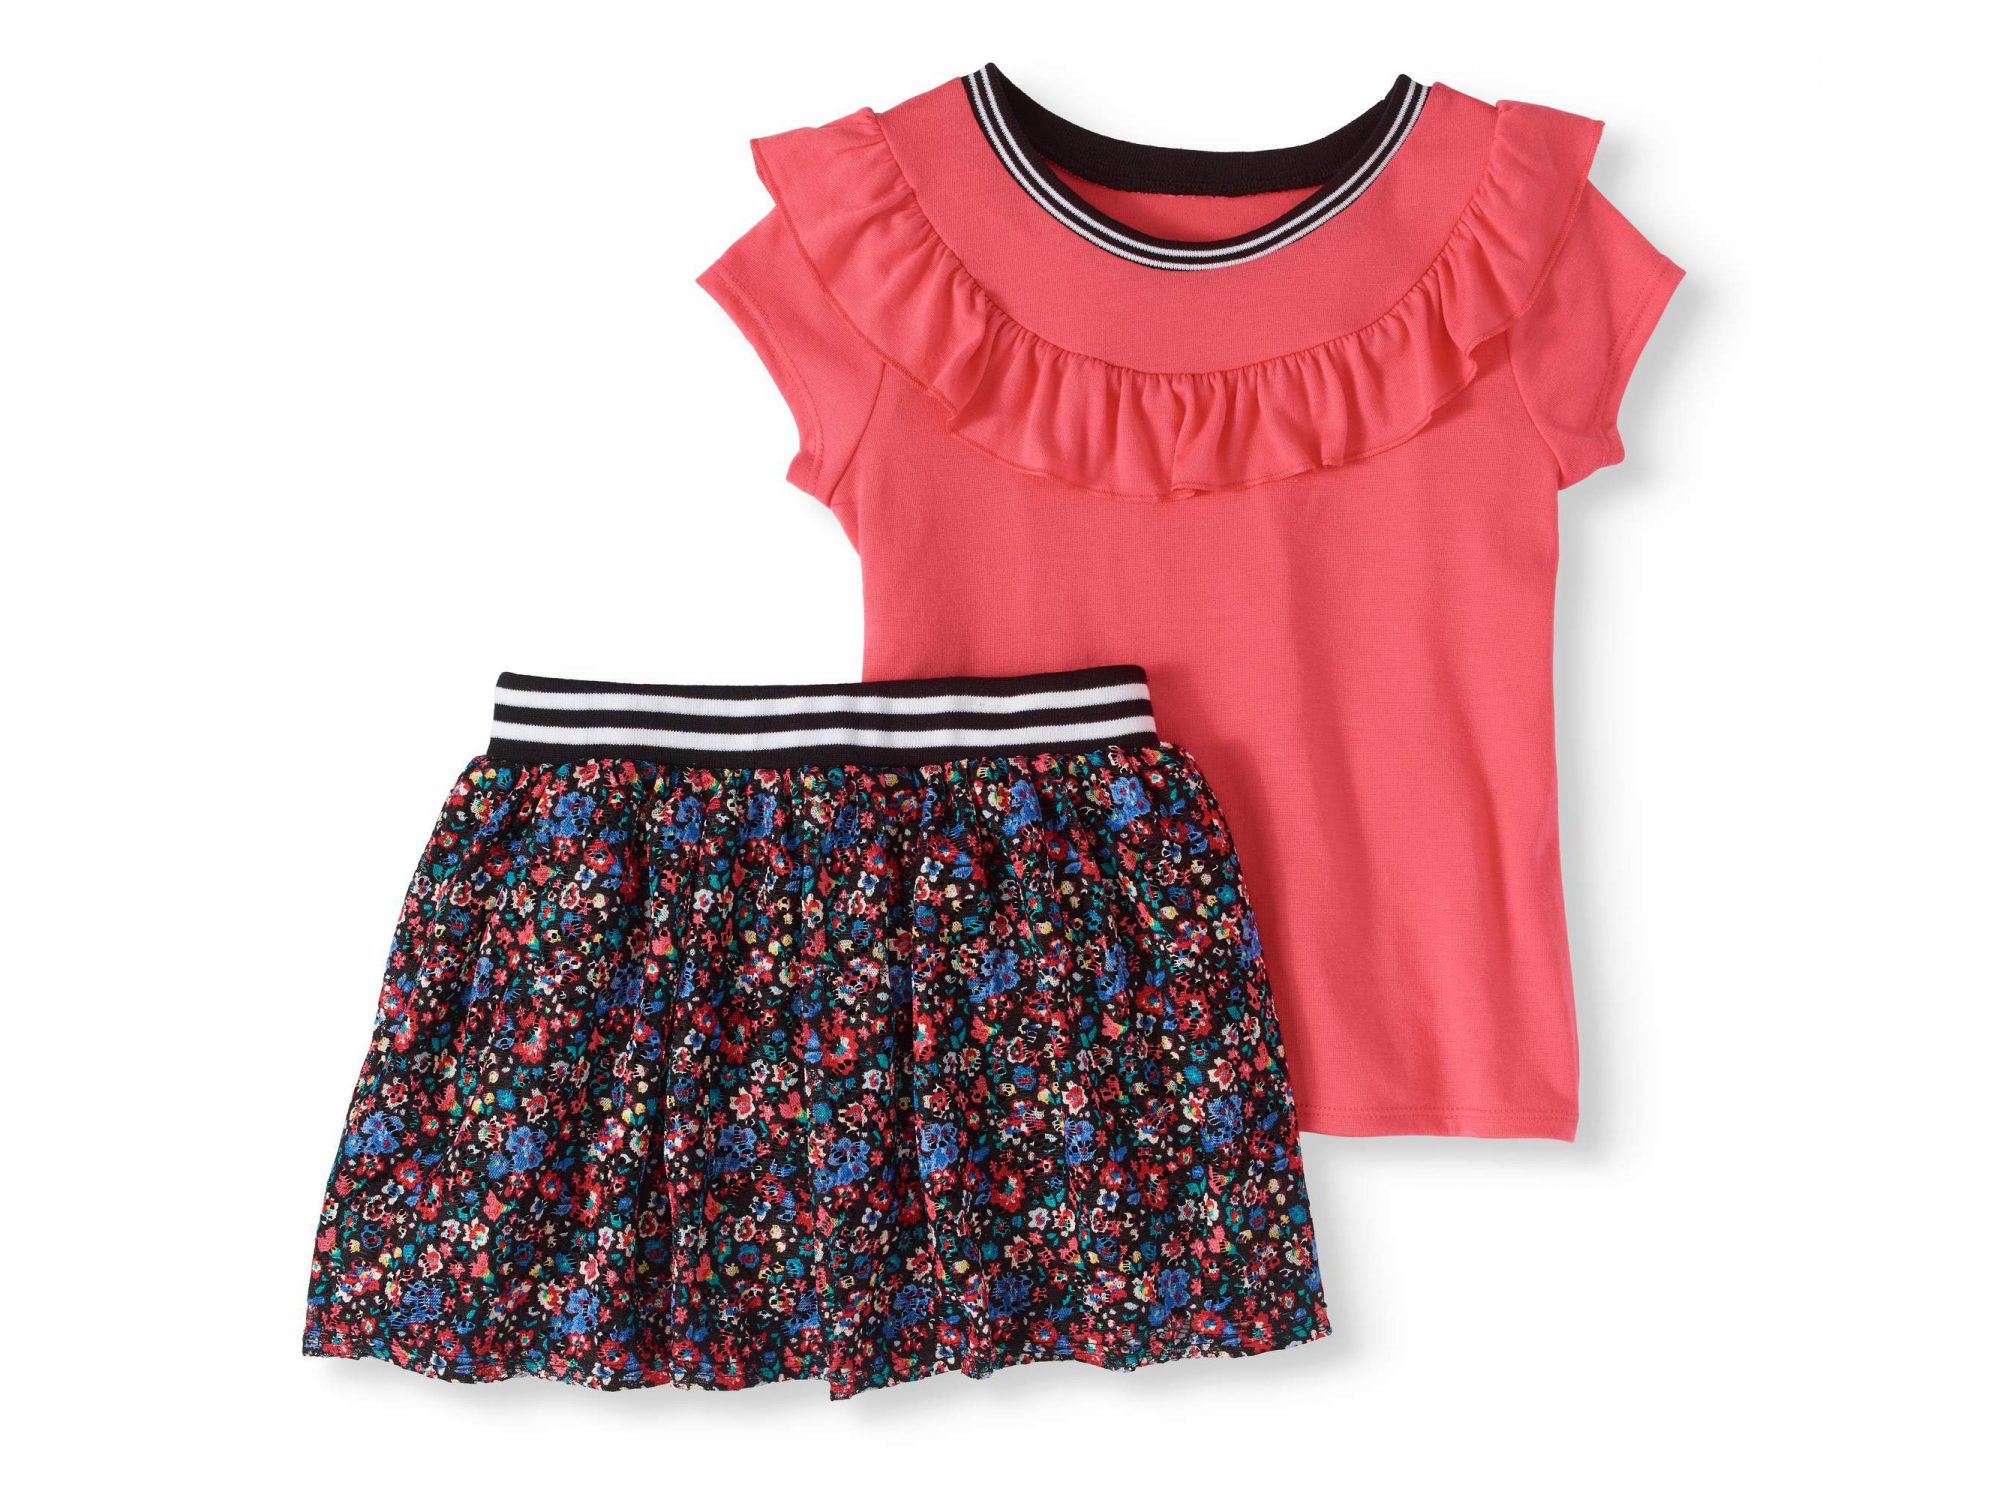 Ruffle Top and Floral Printed Lace Skooter 2-Piece Set